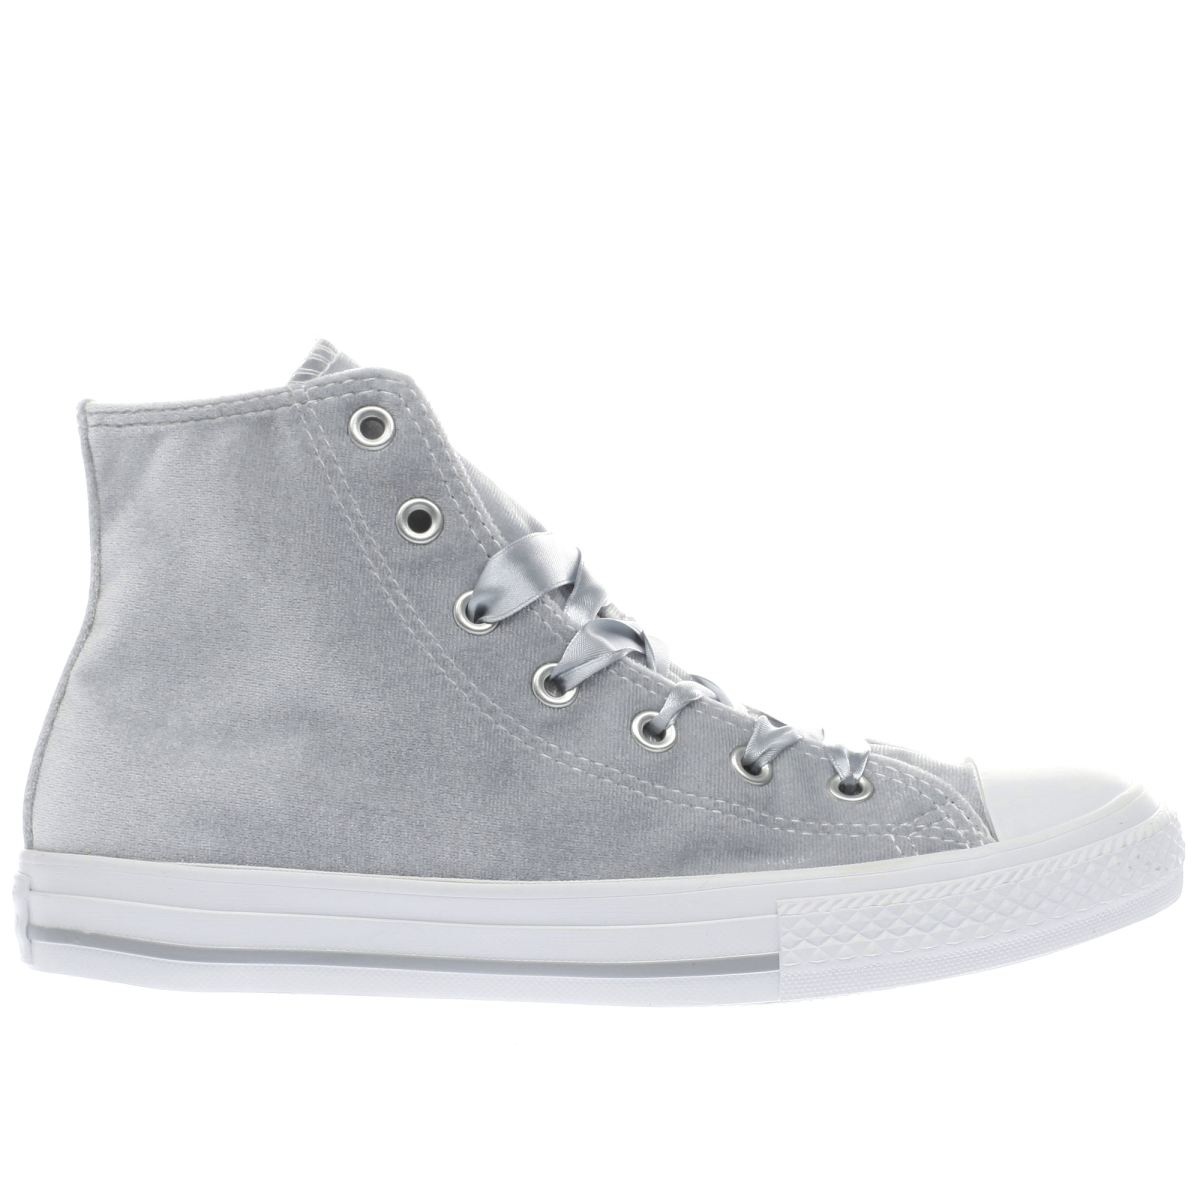 converse silver all star velvet hi Girls Youth Trainers